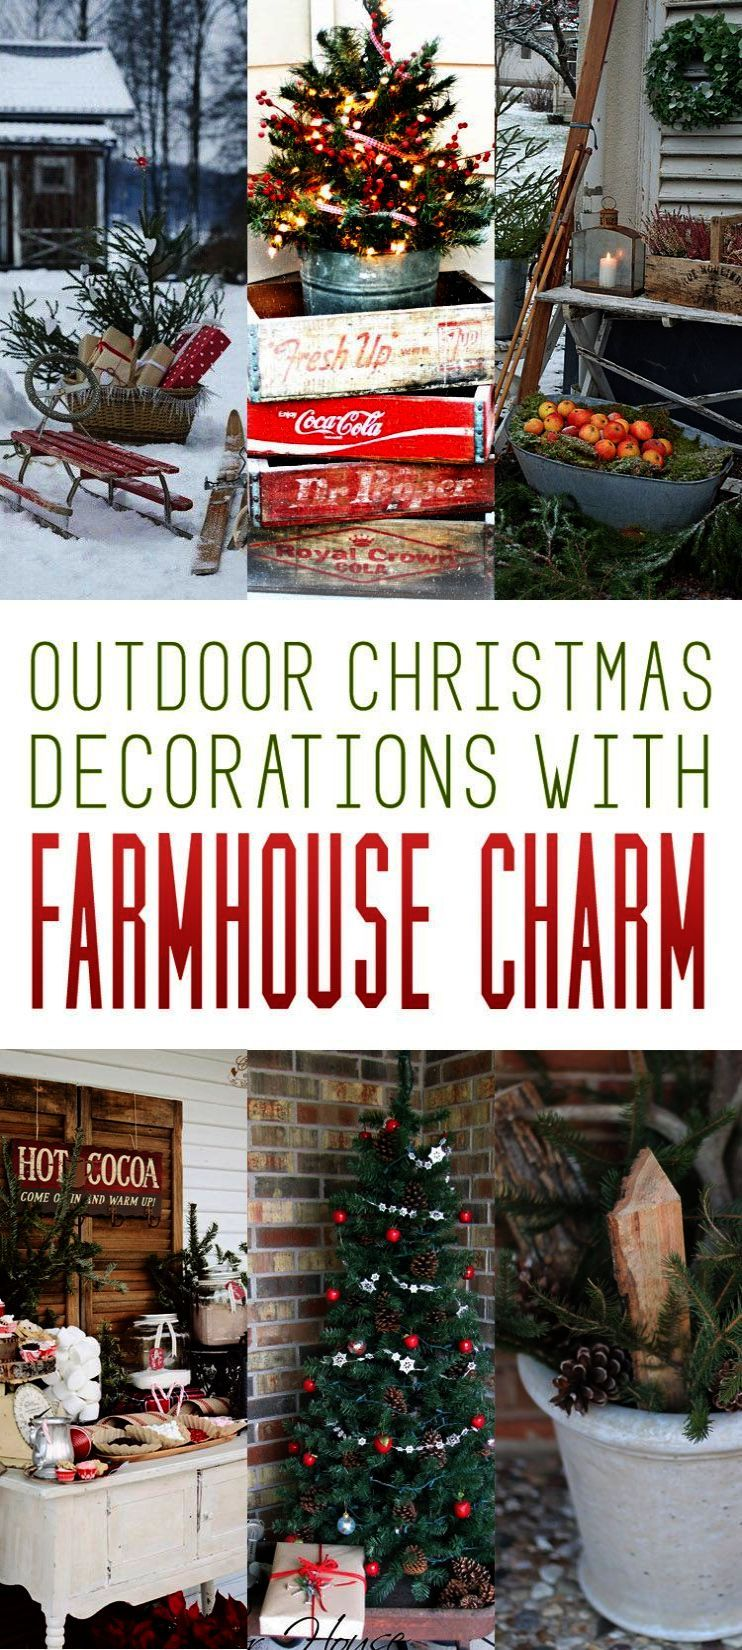 Look what i found ueue christmas decorations diy pinterest outdoor